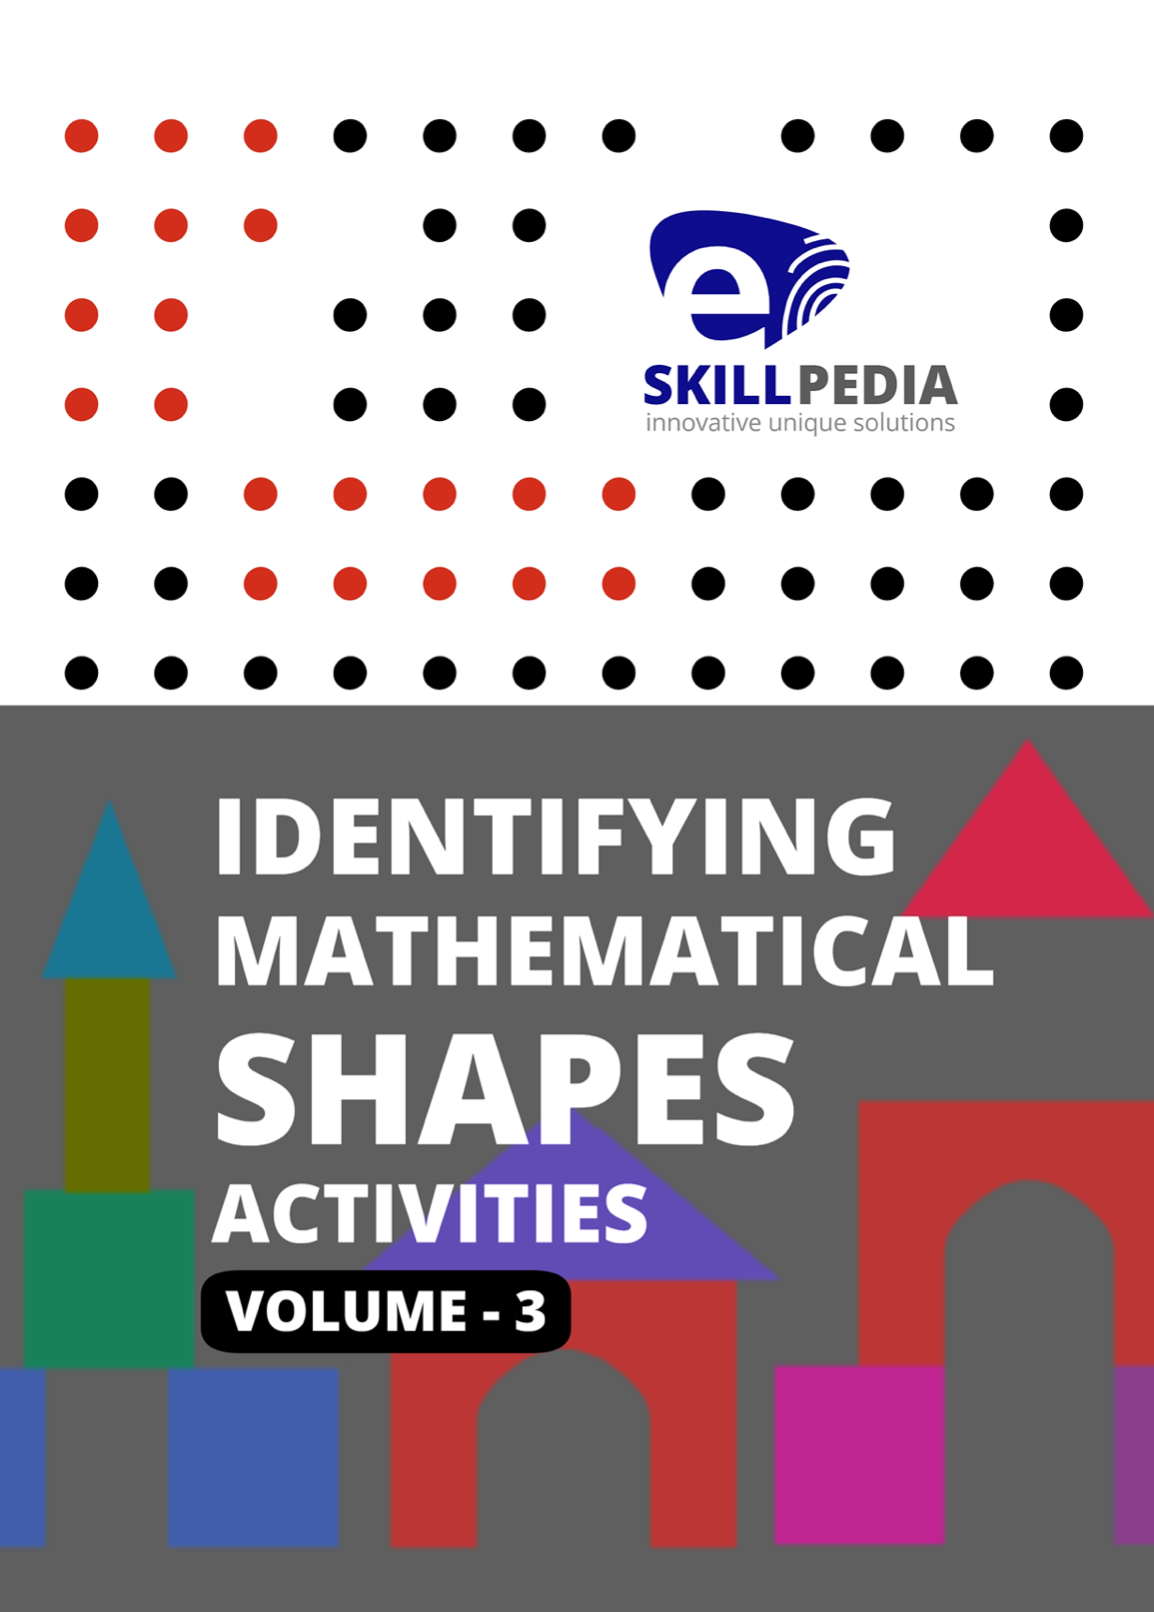 Identifying Mathematical Shapes Activities (Volume 3)